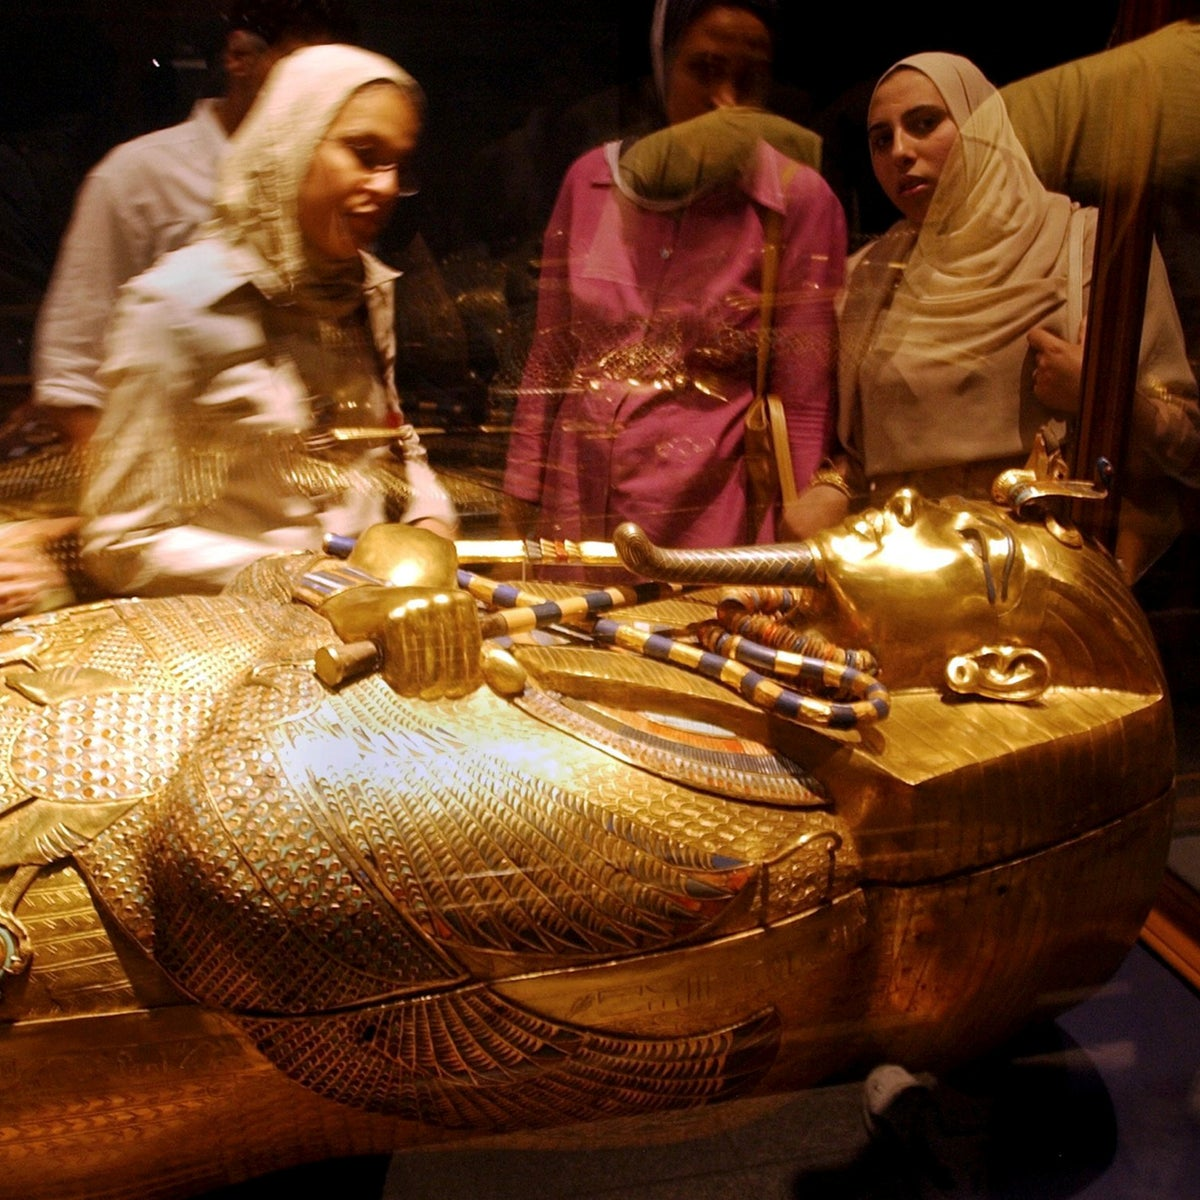 File photo: People admire the third and innermost of the three anthropoid coffins of Tutankhamun at the Egyptian Museum in Cairo, April 5, 2003.